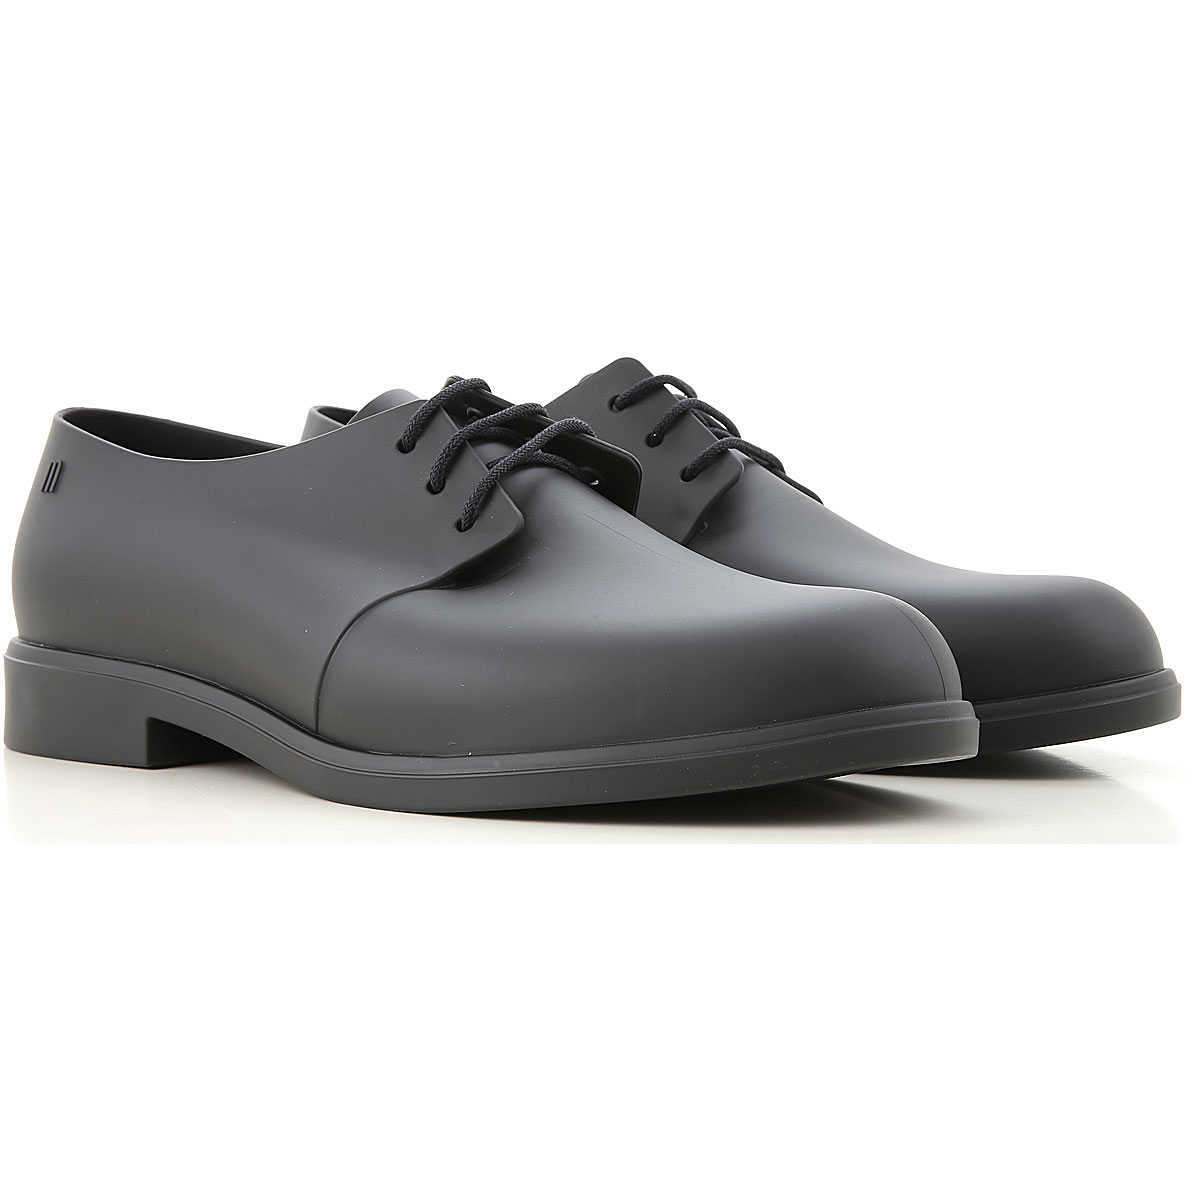 Melissa Lace Up Shoes for Men Oxfords Derbies and Brogues - GOOFASH